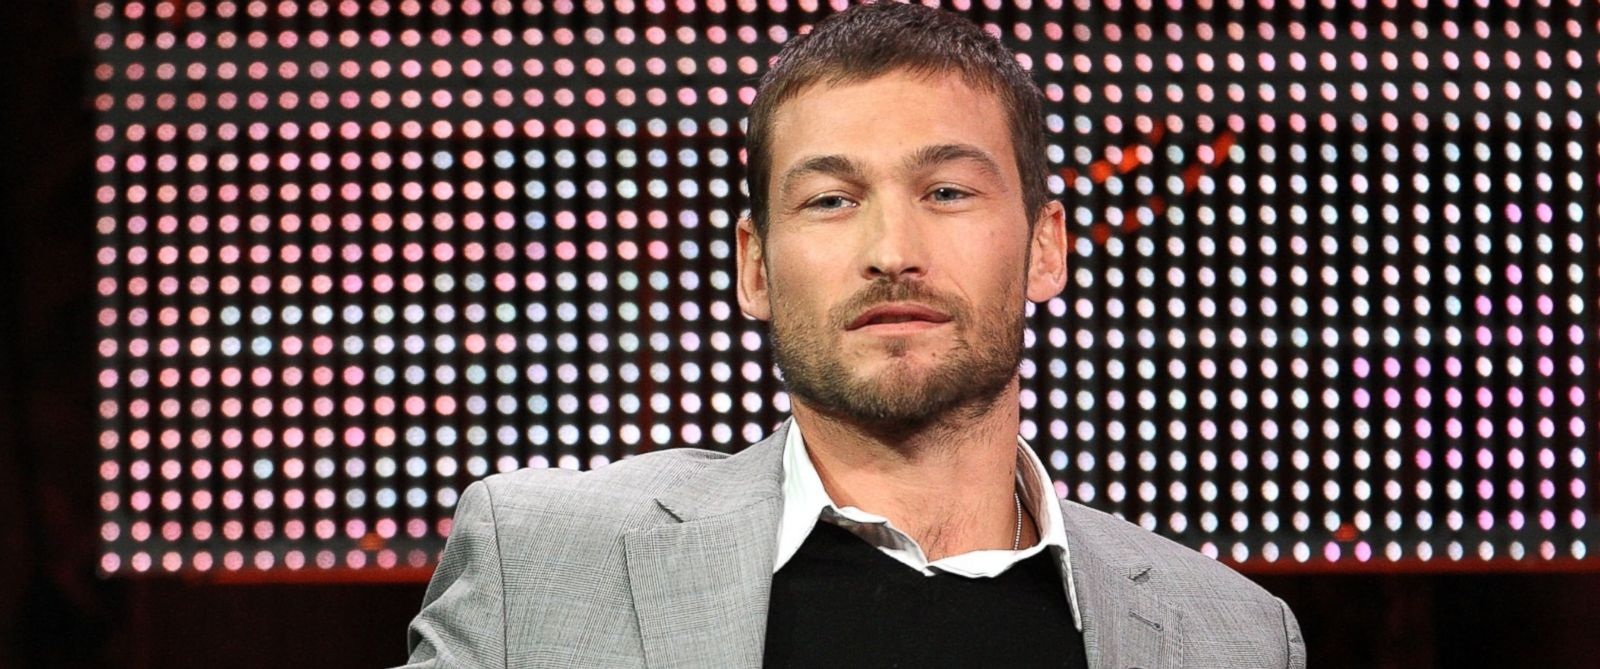 Andy Whitfield Pictures Images amp Photos  Photobucket